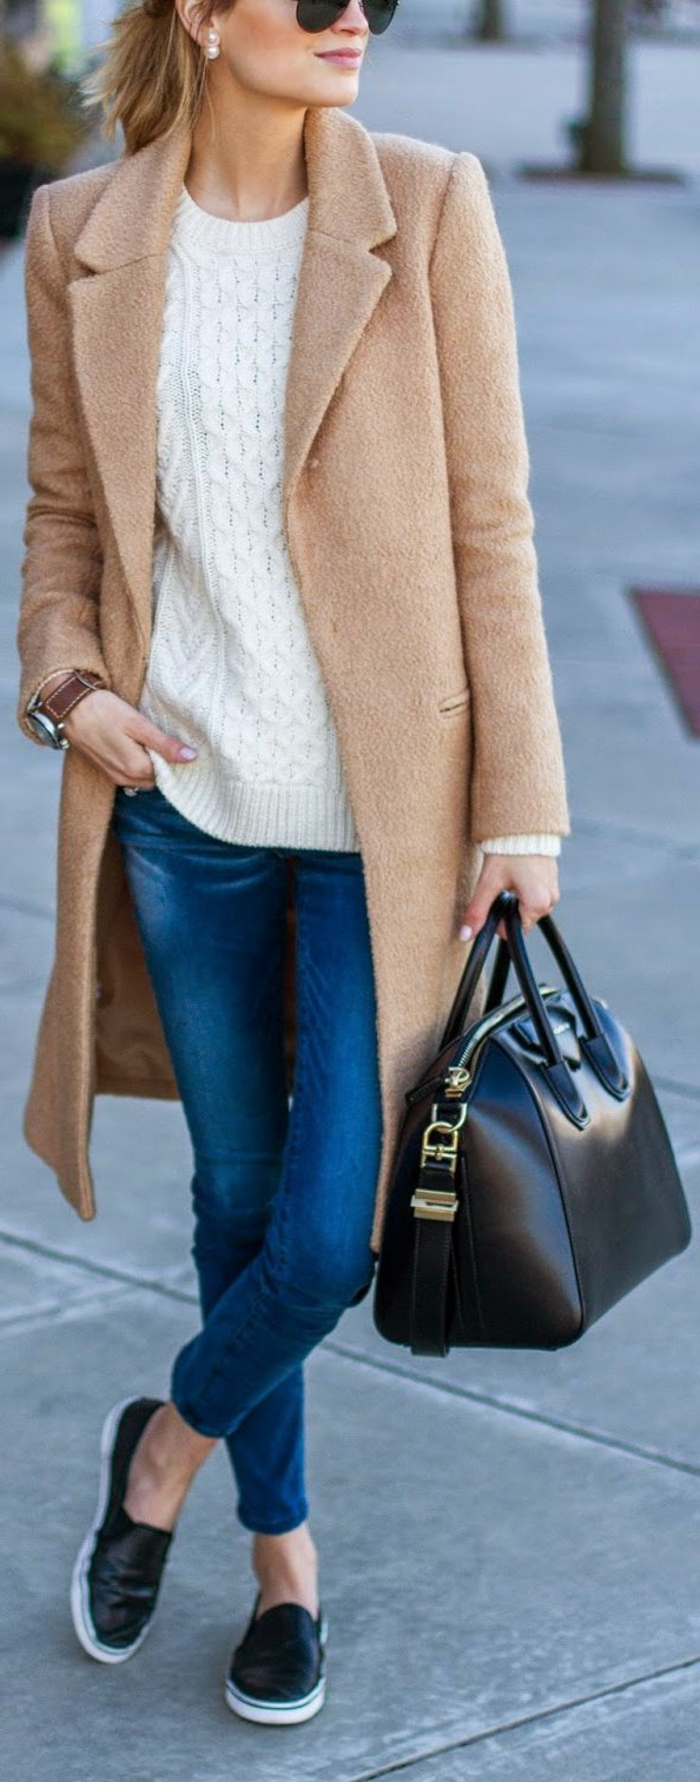 long camel brown coat over white sweater, blue jeans and black leather slip-on shoes, worn by blonde woman with sunglasses, holding black leather bag